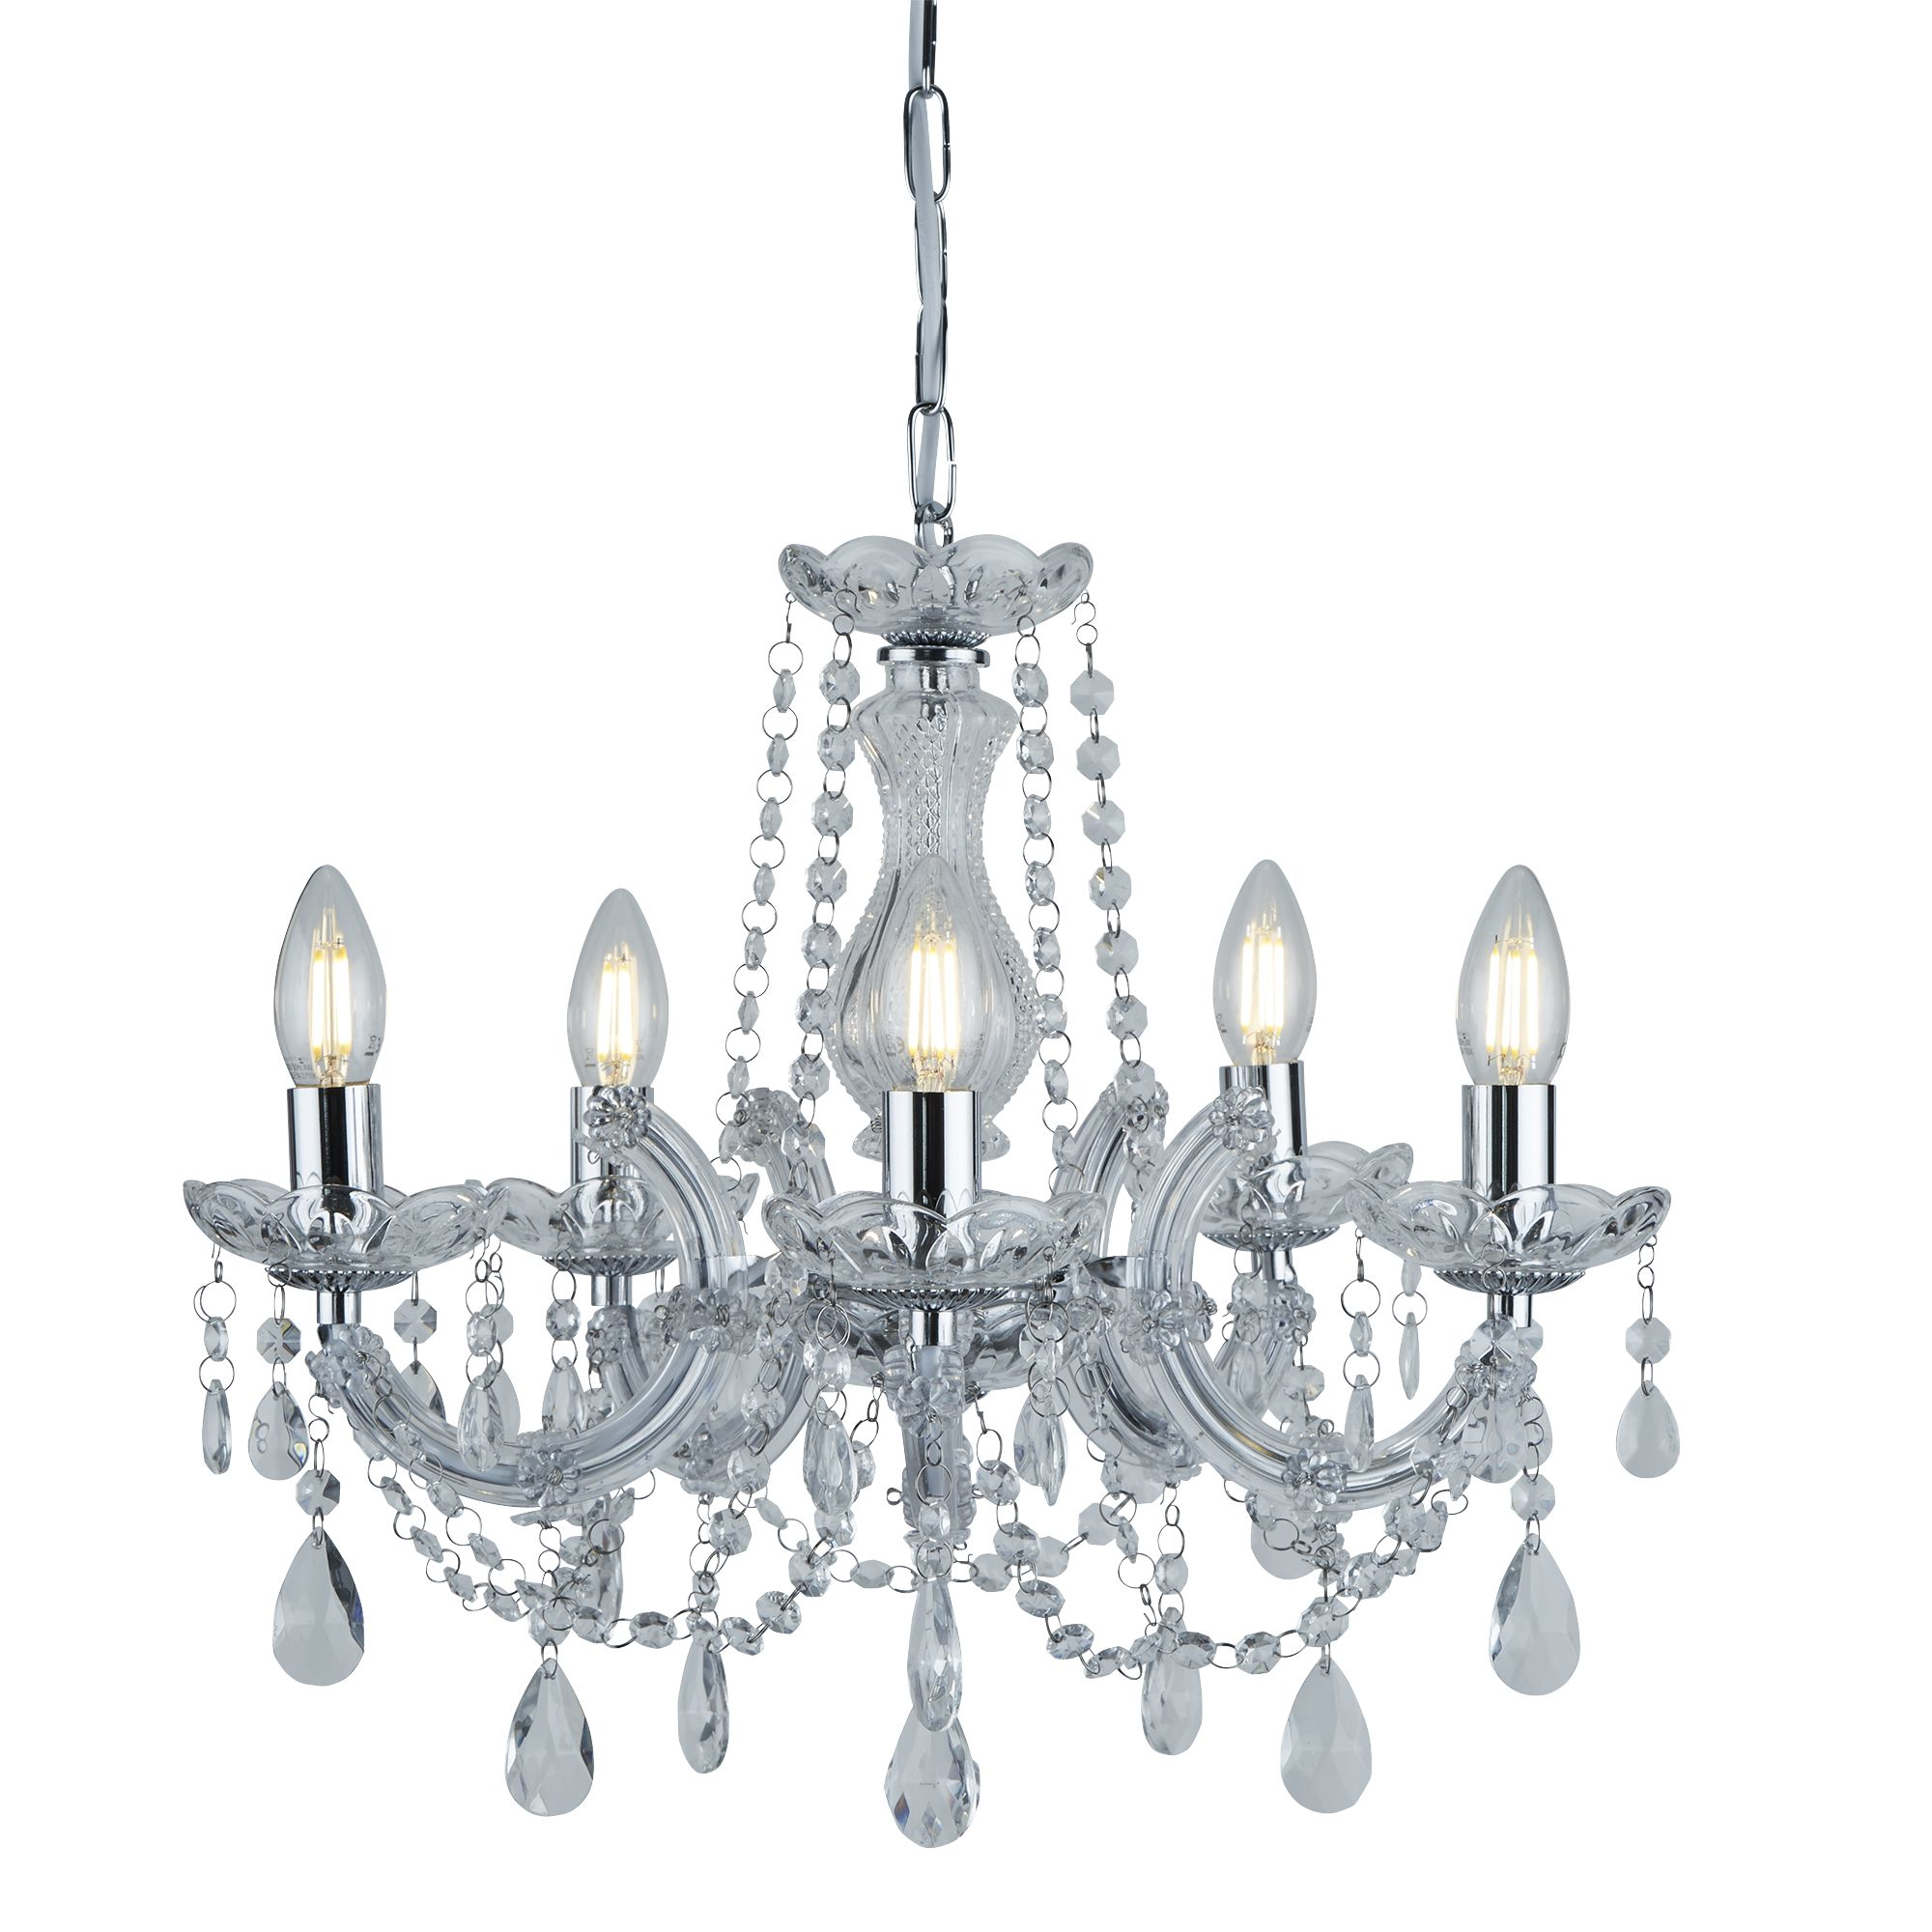 MARIE THERESE chandelier 5 light in chrome & crystal